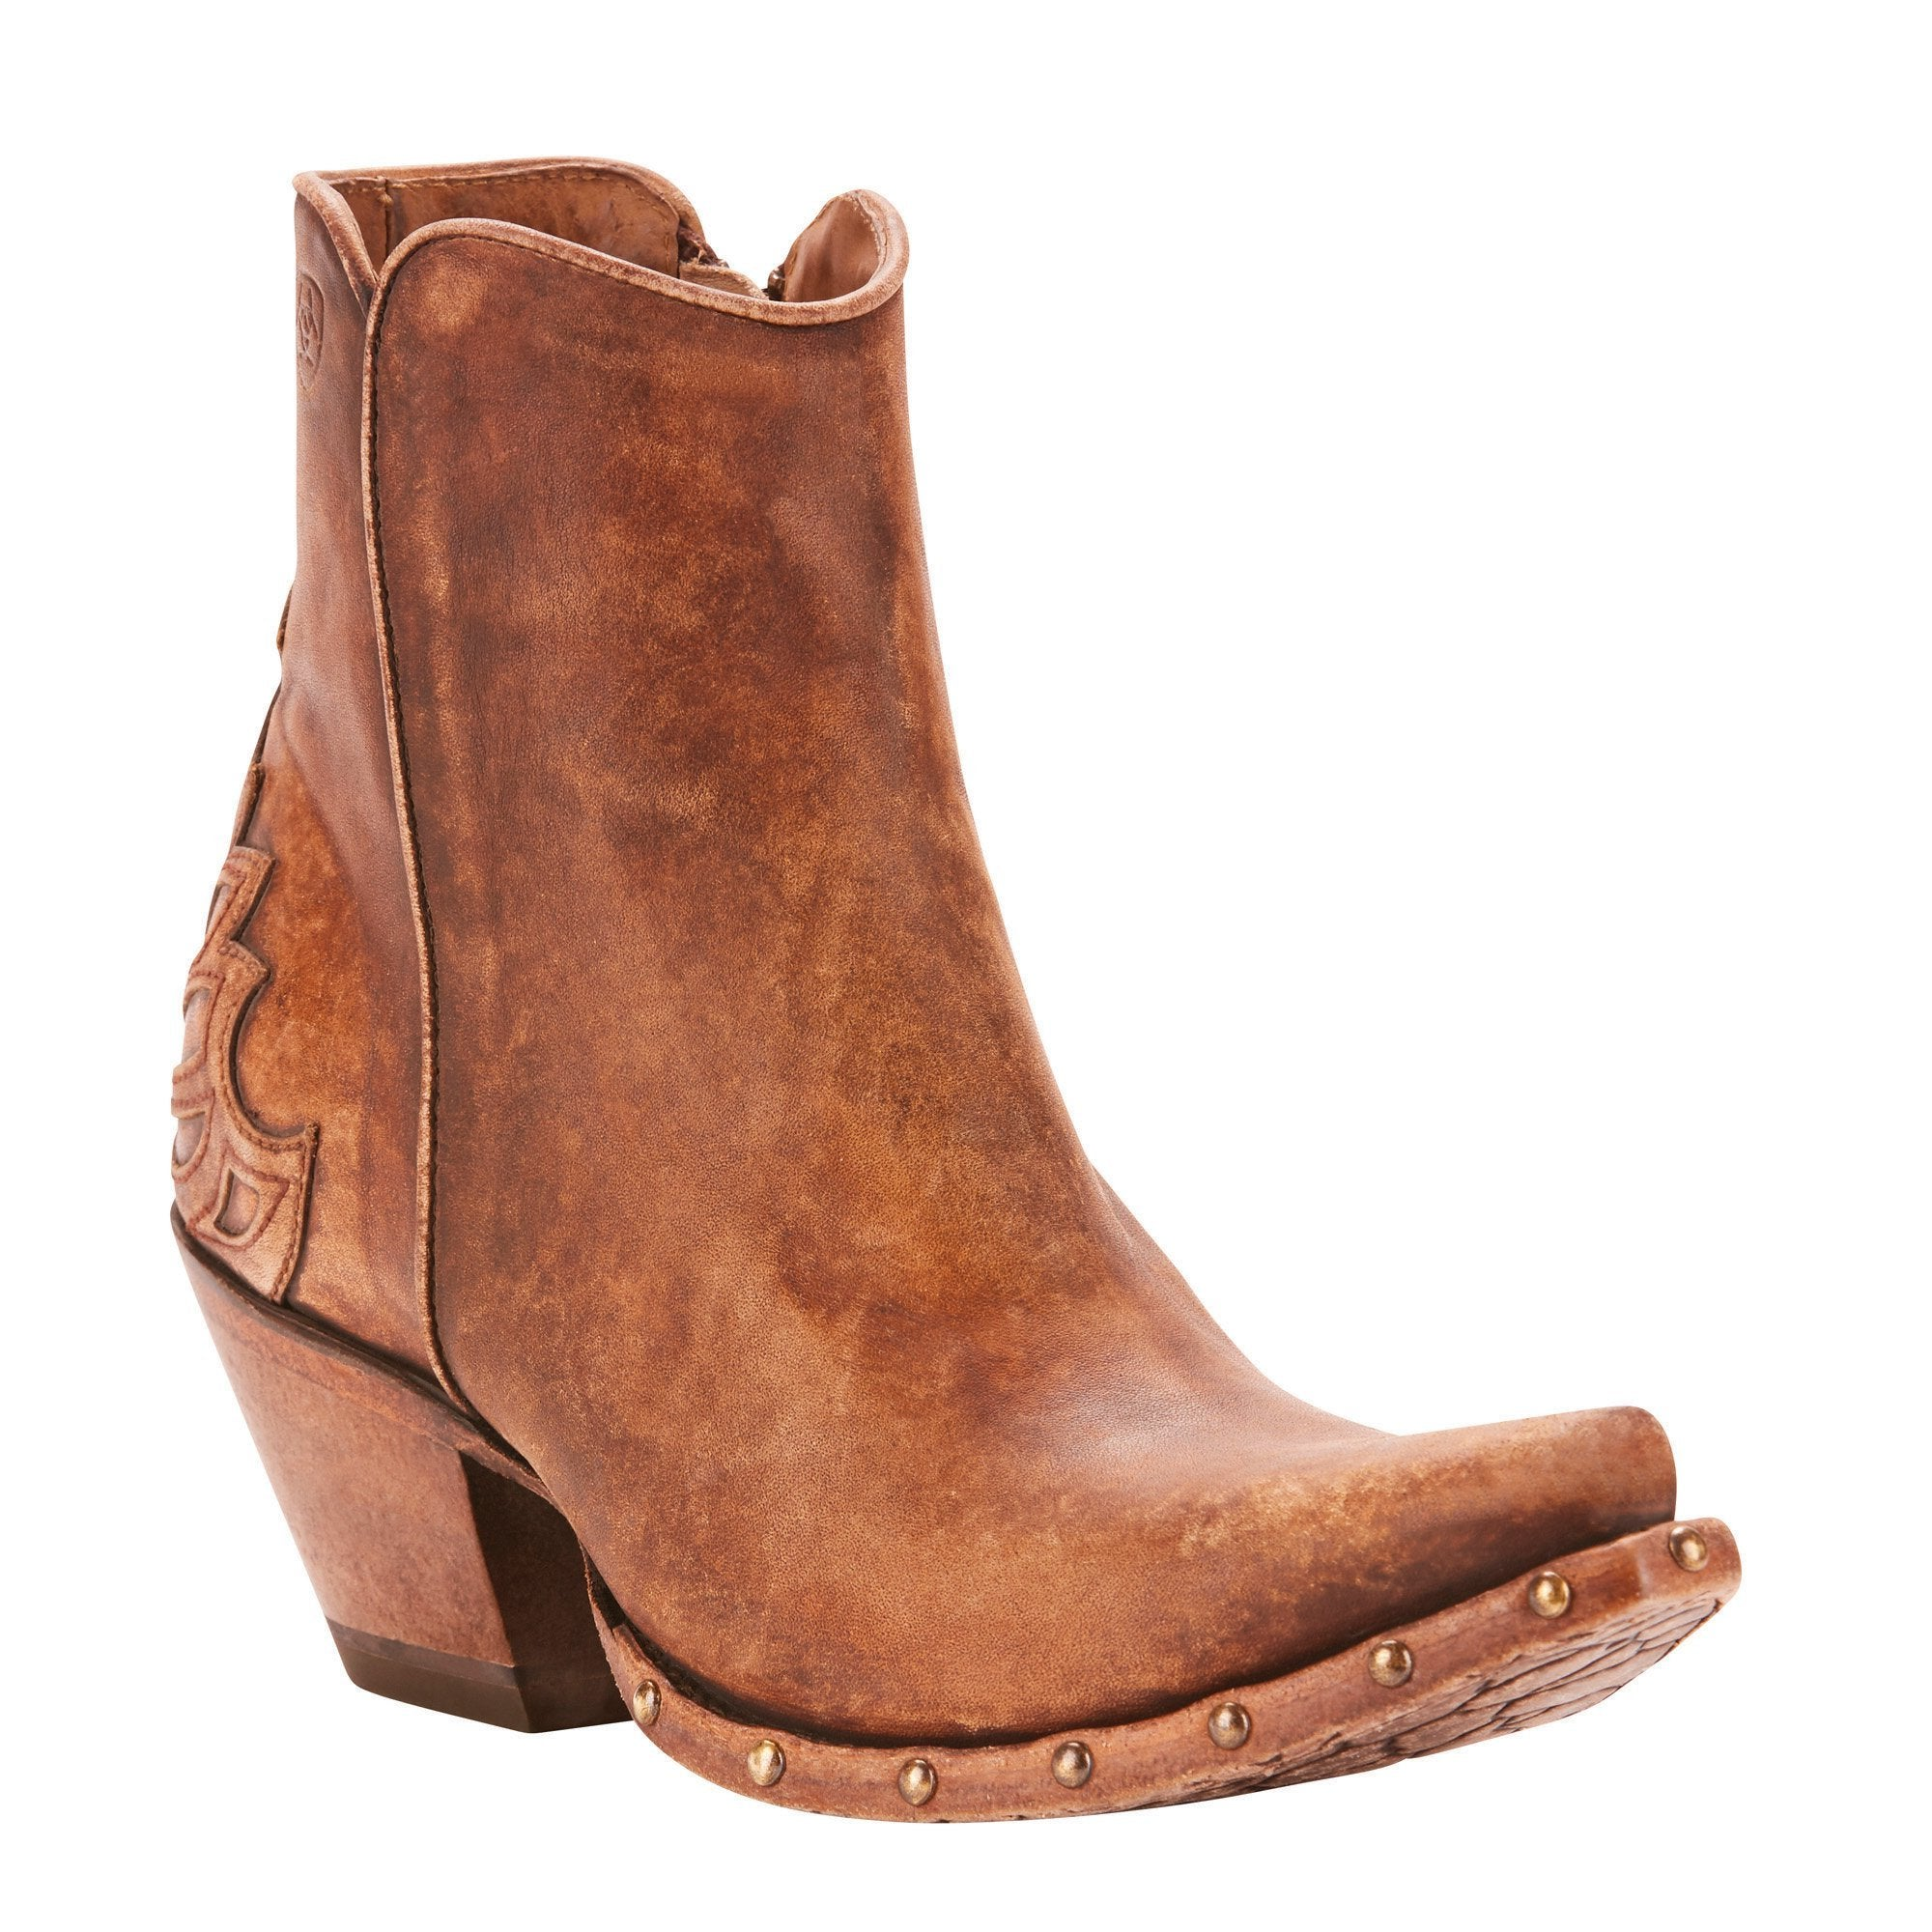 c4a37896b7c8d Women's Ariat Fenix Western Ankle Boot Distressed Taupe #10025110 ...